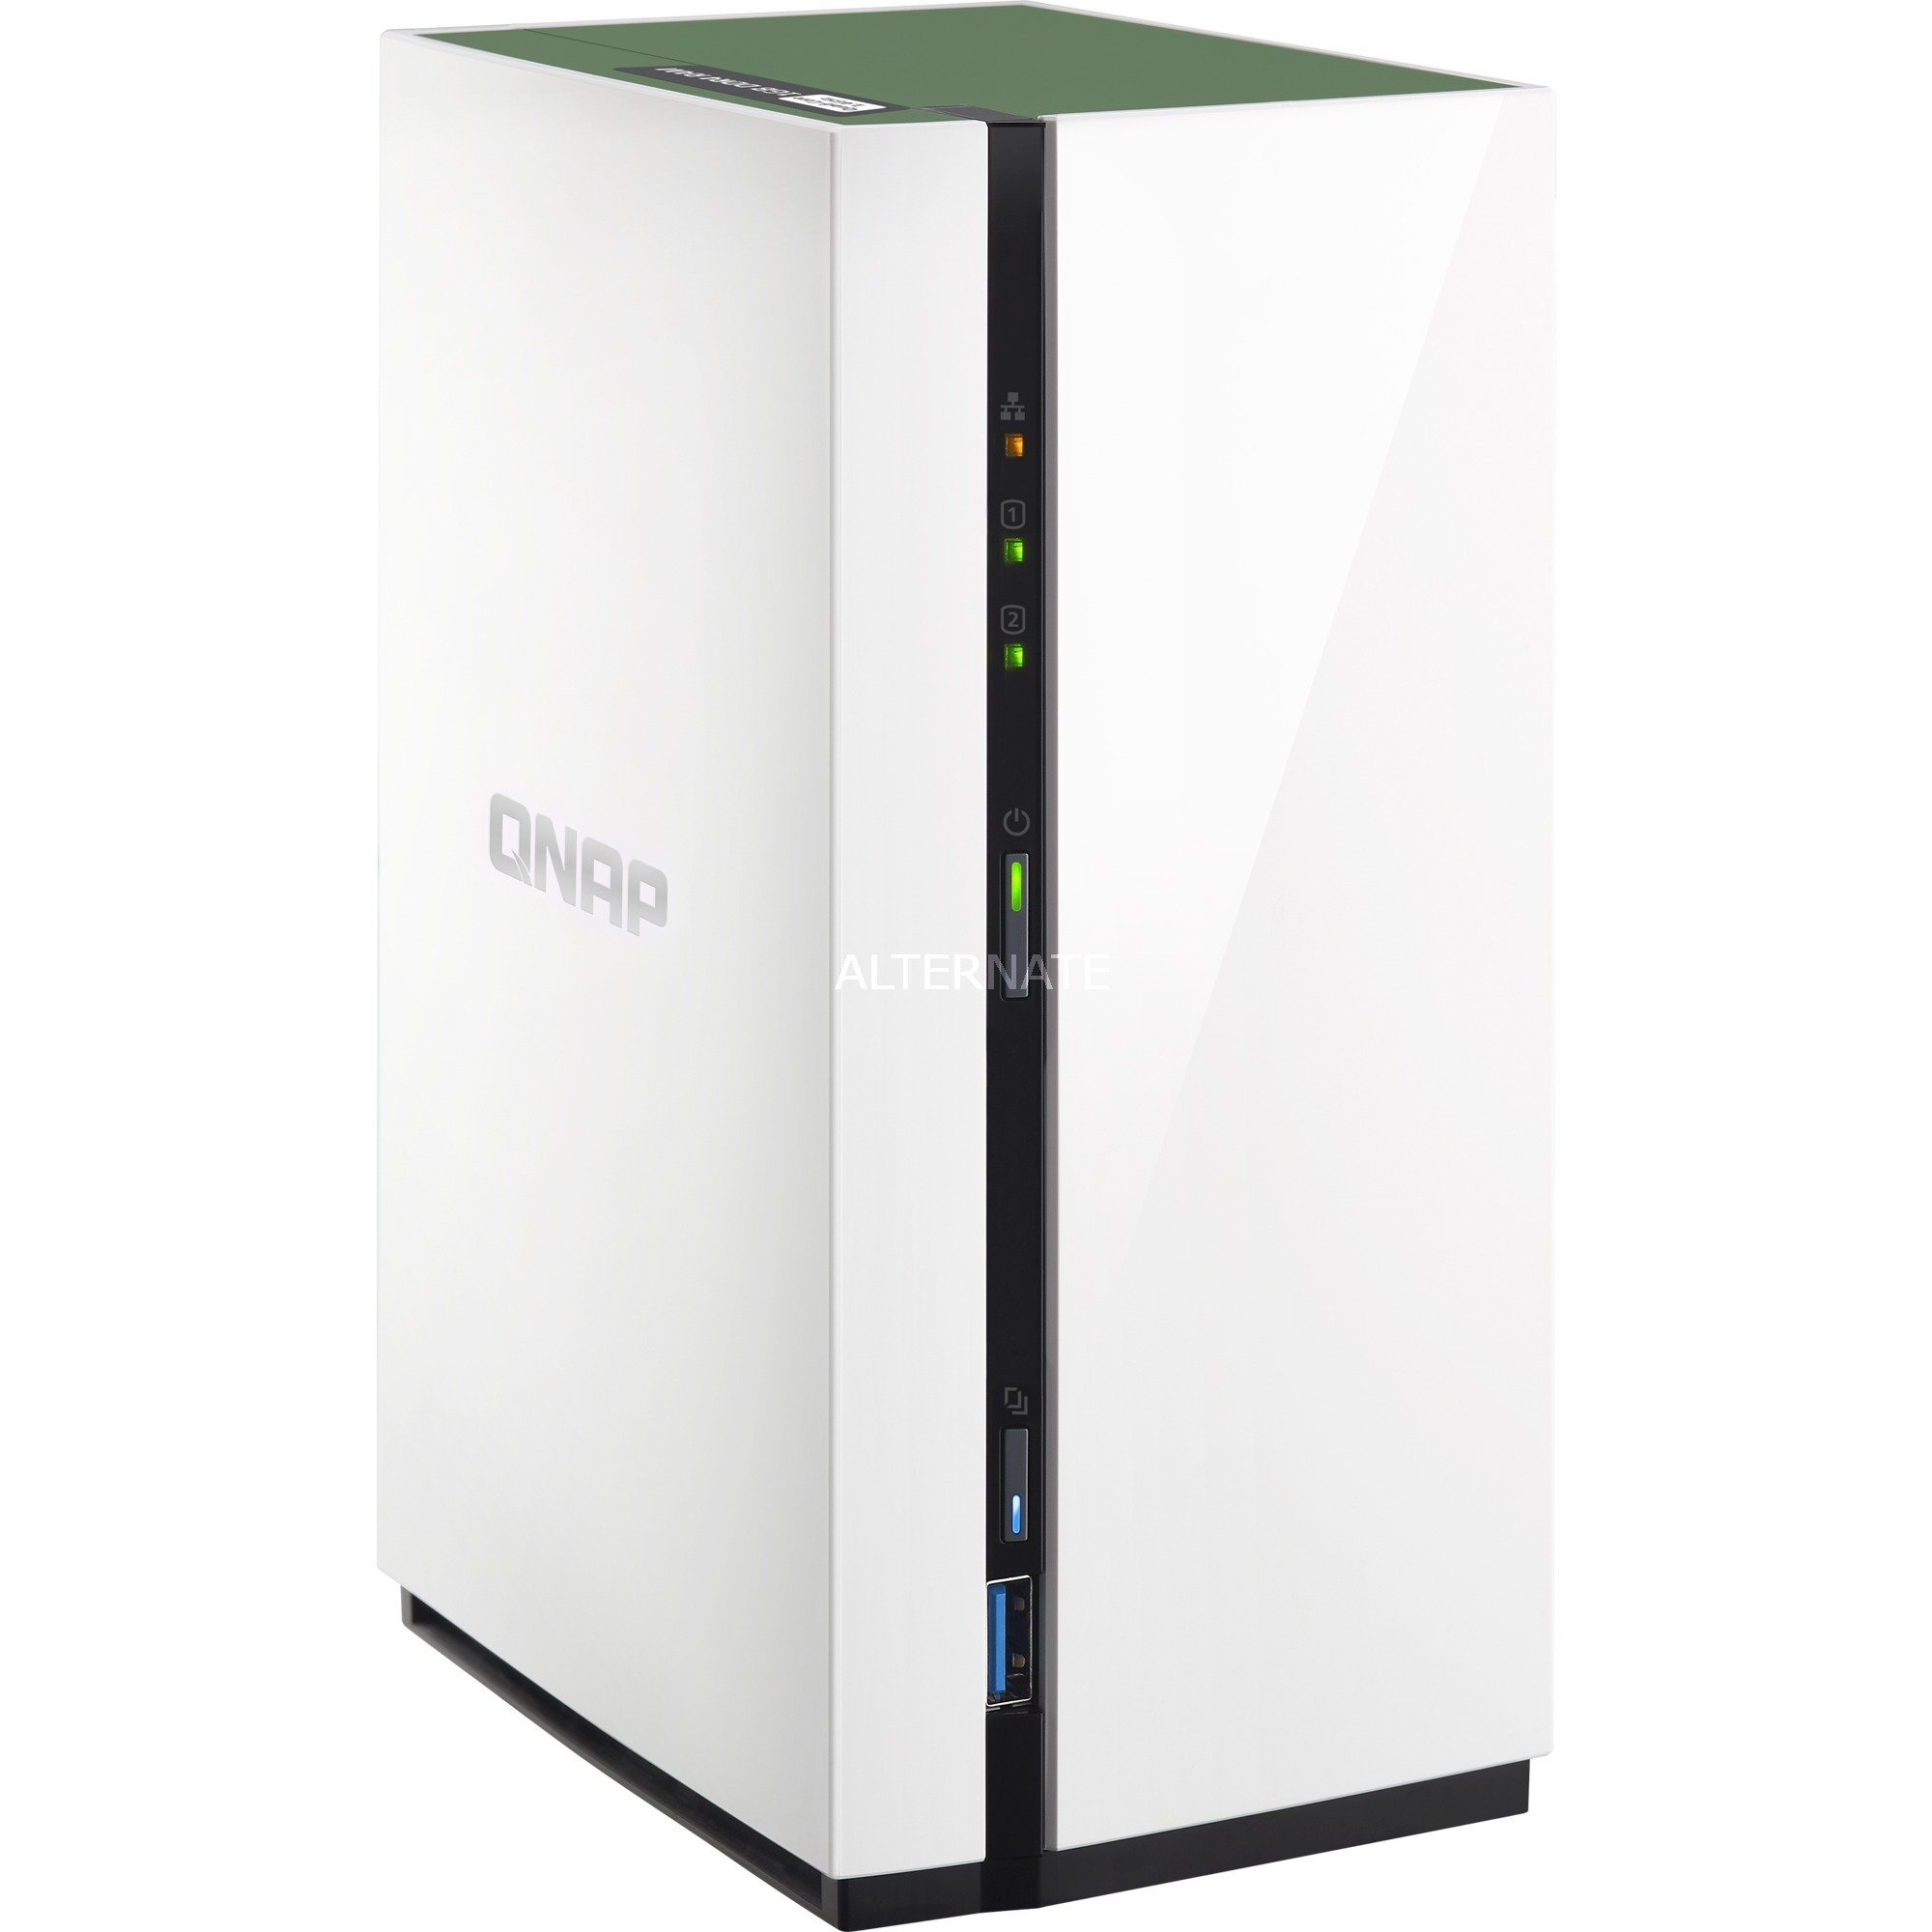 TS-228A NAS Mini Tower Ethernet Blanco servidor de almacenamiento